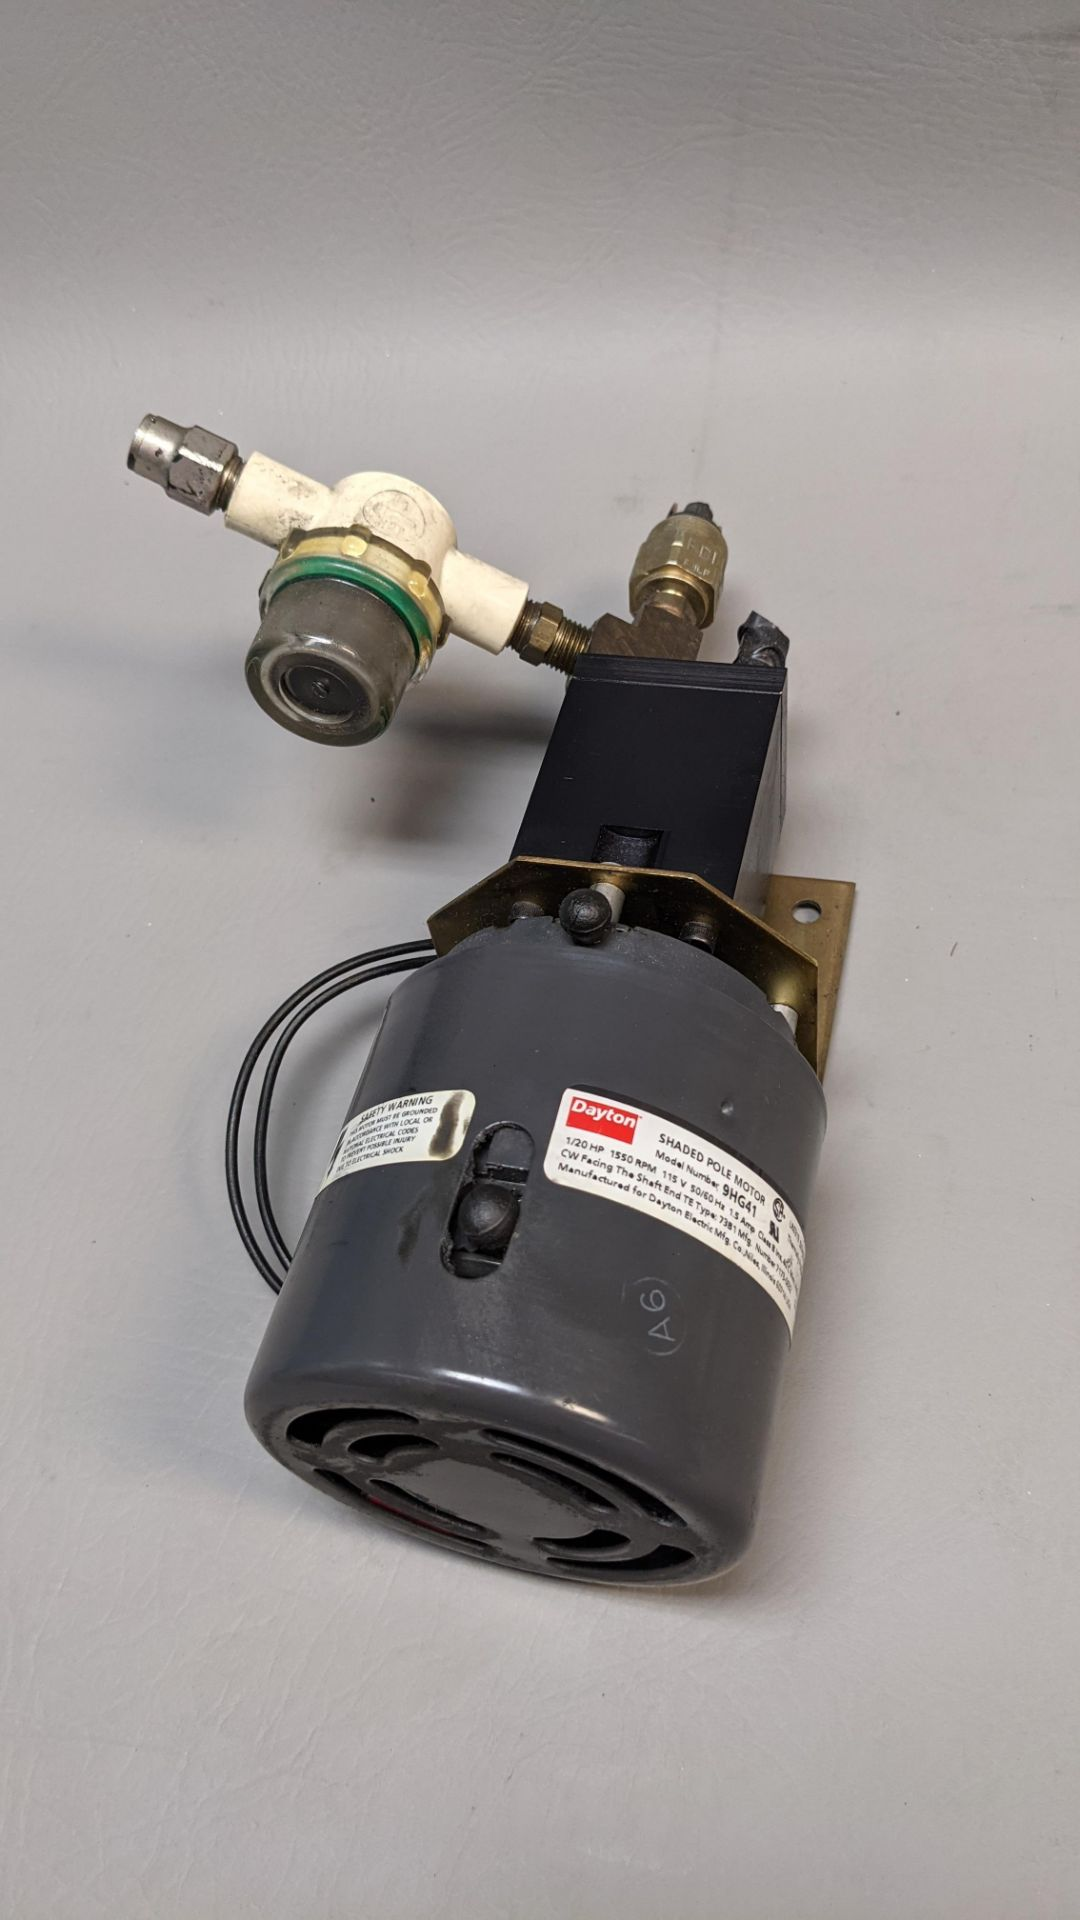 DAYTON MOTOR AND ATTACHMENT